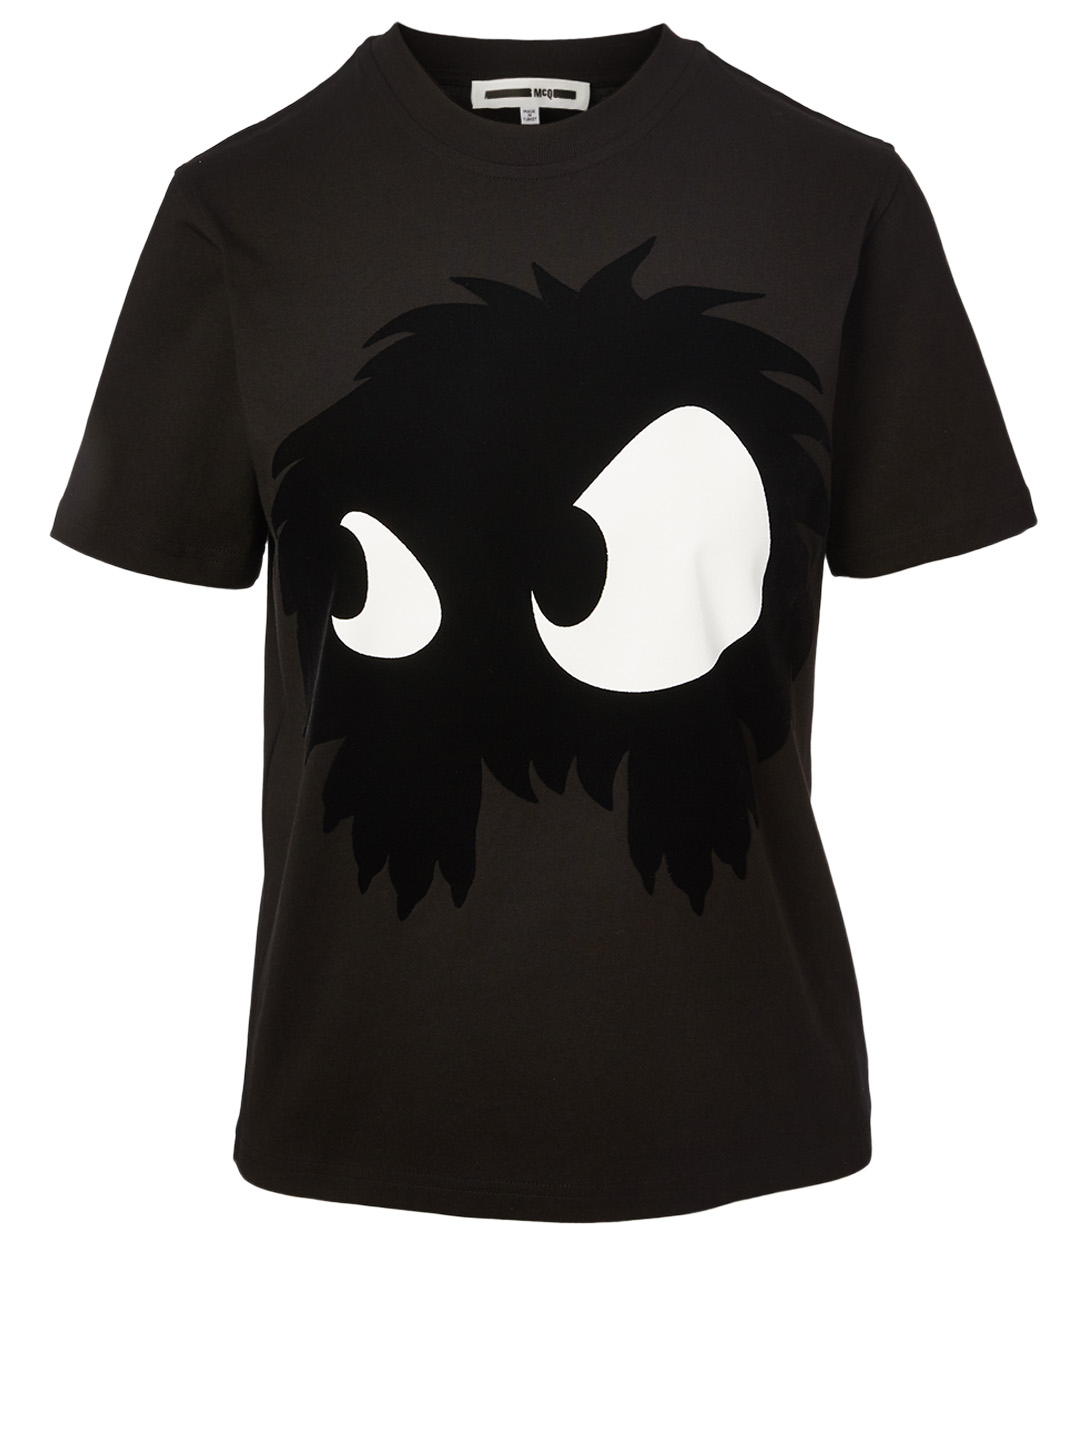 MCQ ALEXANDER MCQUEEN Chester Monster Cotton T-Shirt Women's Black